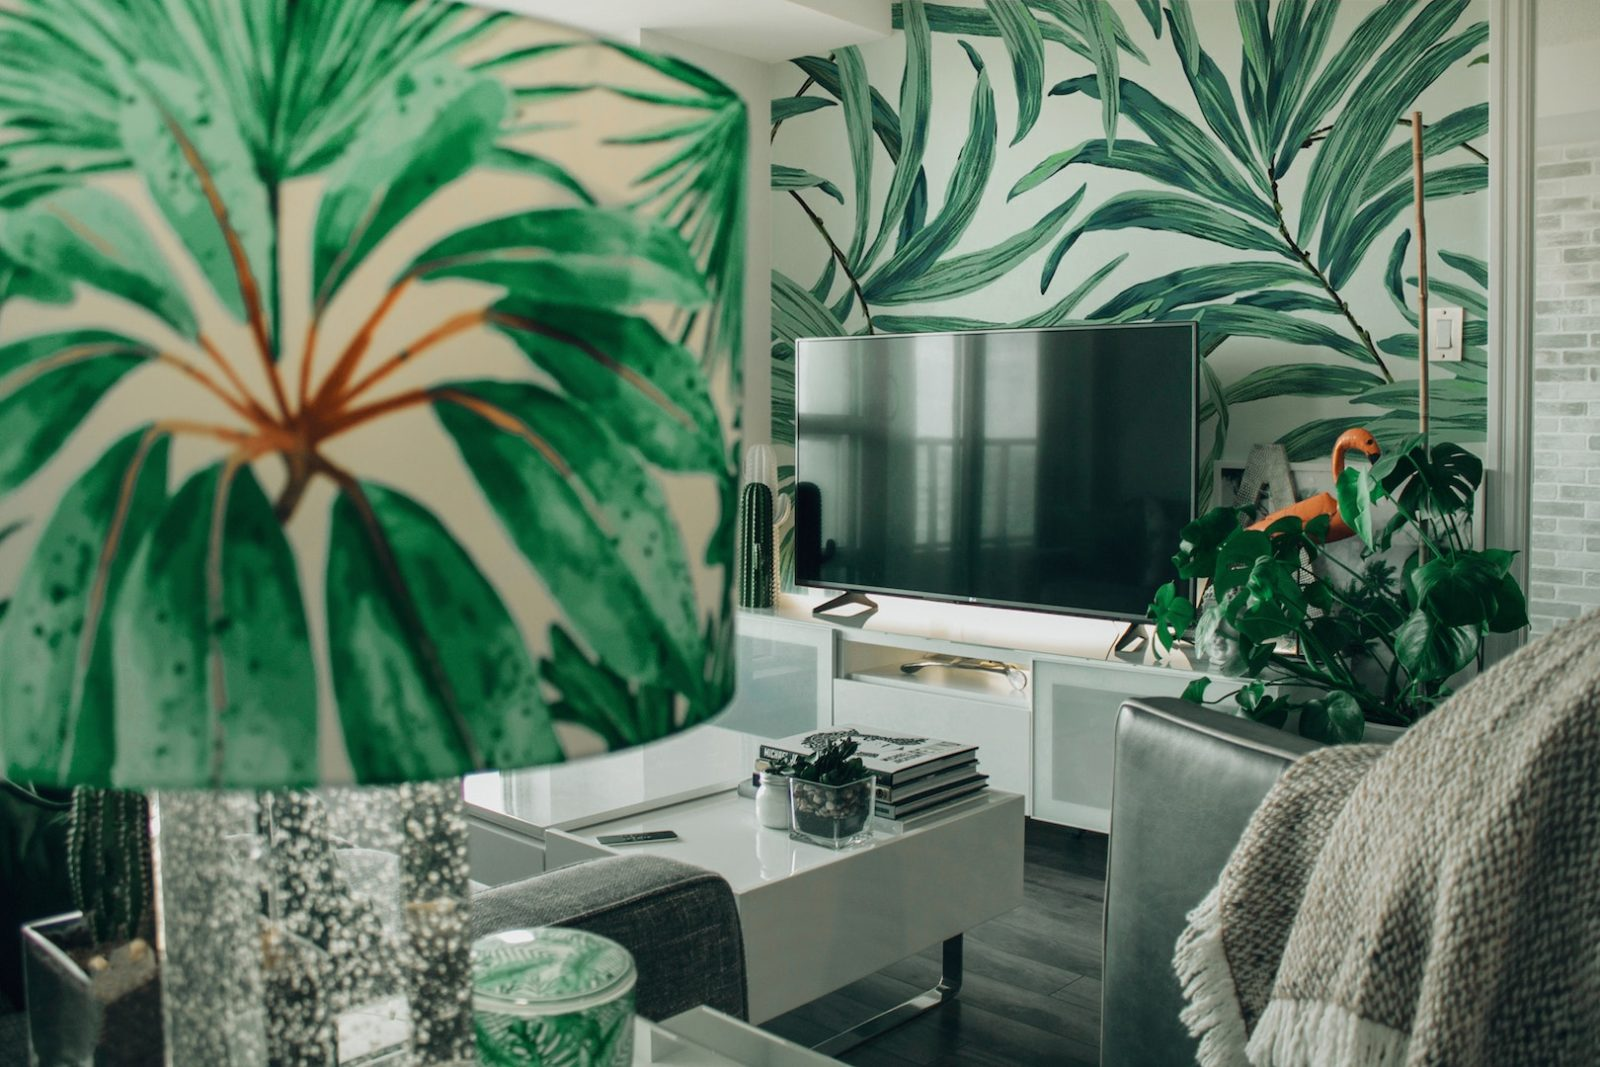 4 IDEAL WAYS TO ACHIEVE TROPICAL CHIC IN YOUR INTERIOR DESIGN